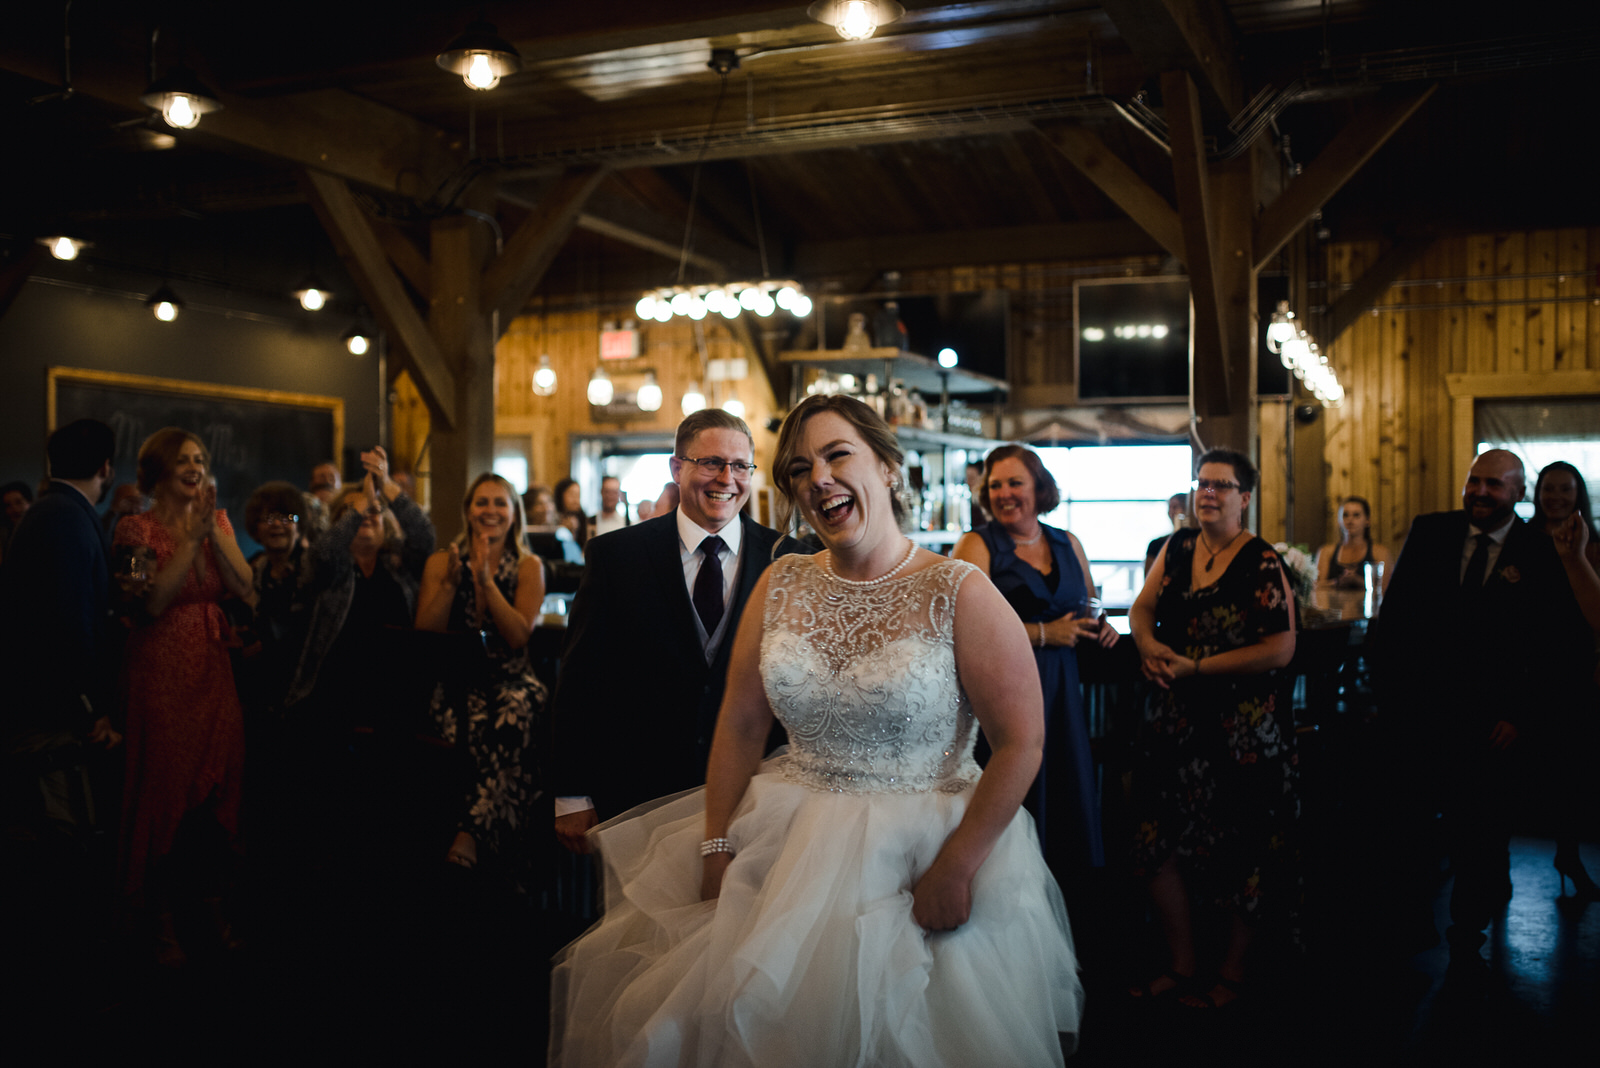 The Leddas Wedding Photography - Anne-Marie & Travis: Water Valley Wedding